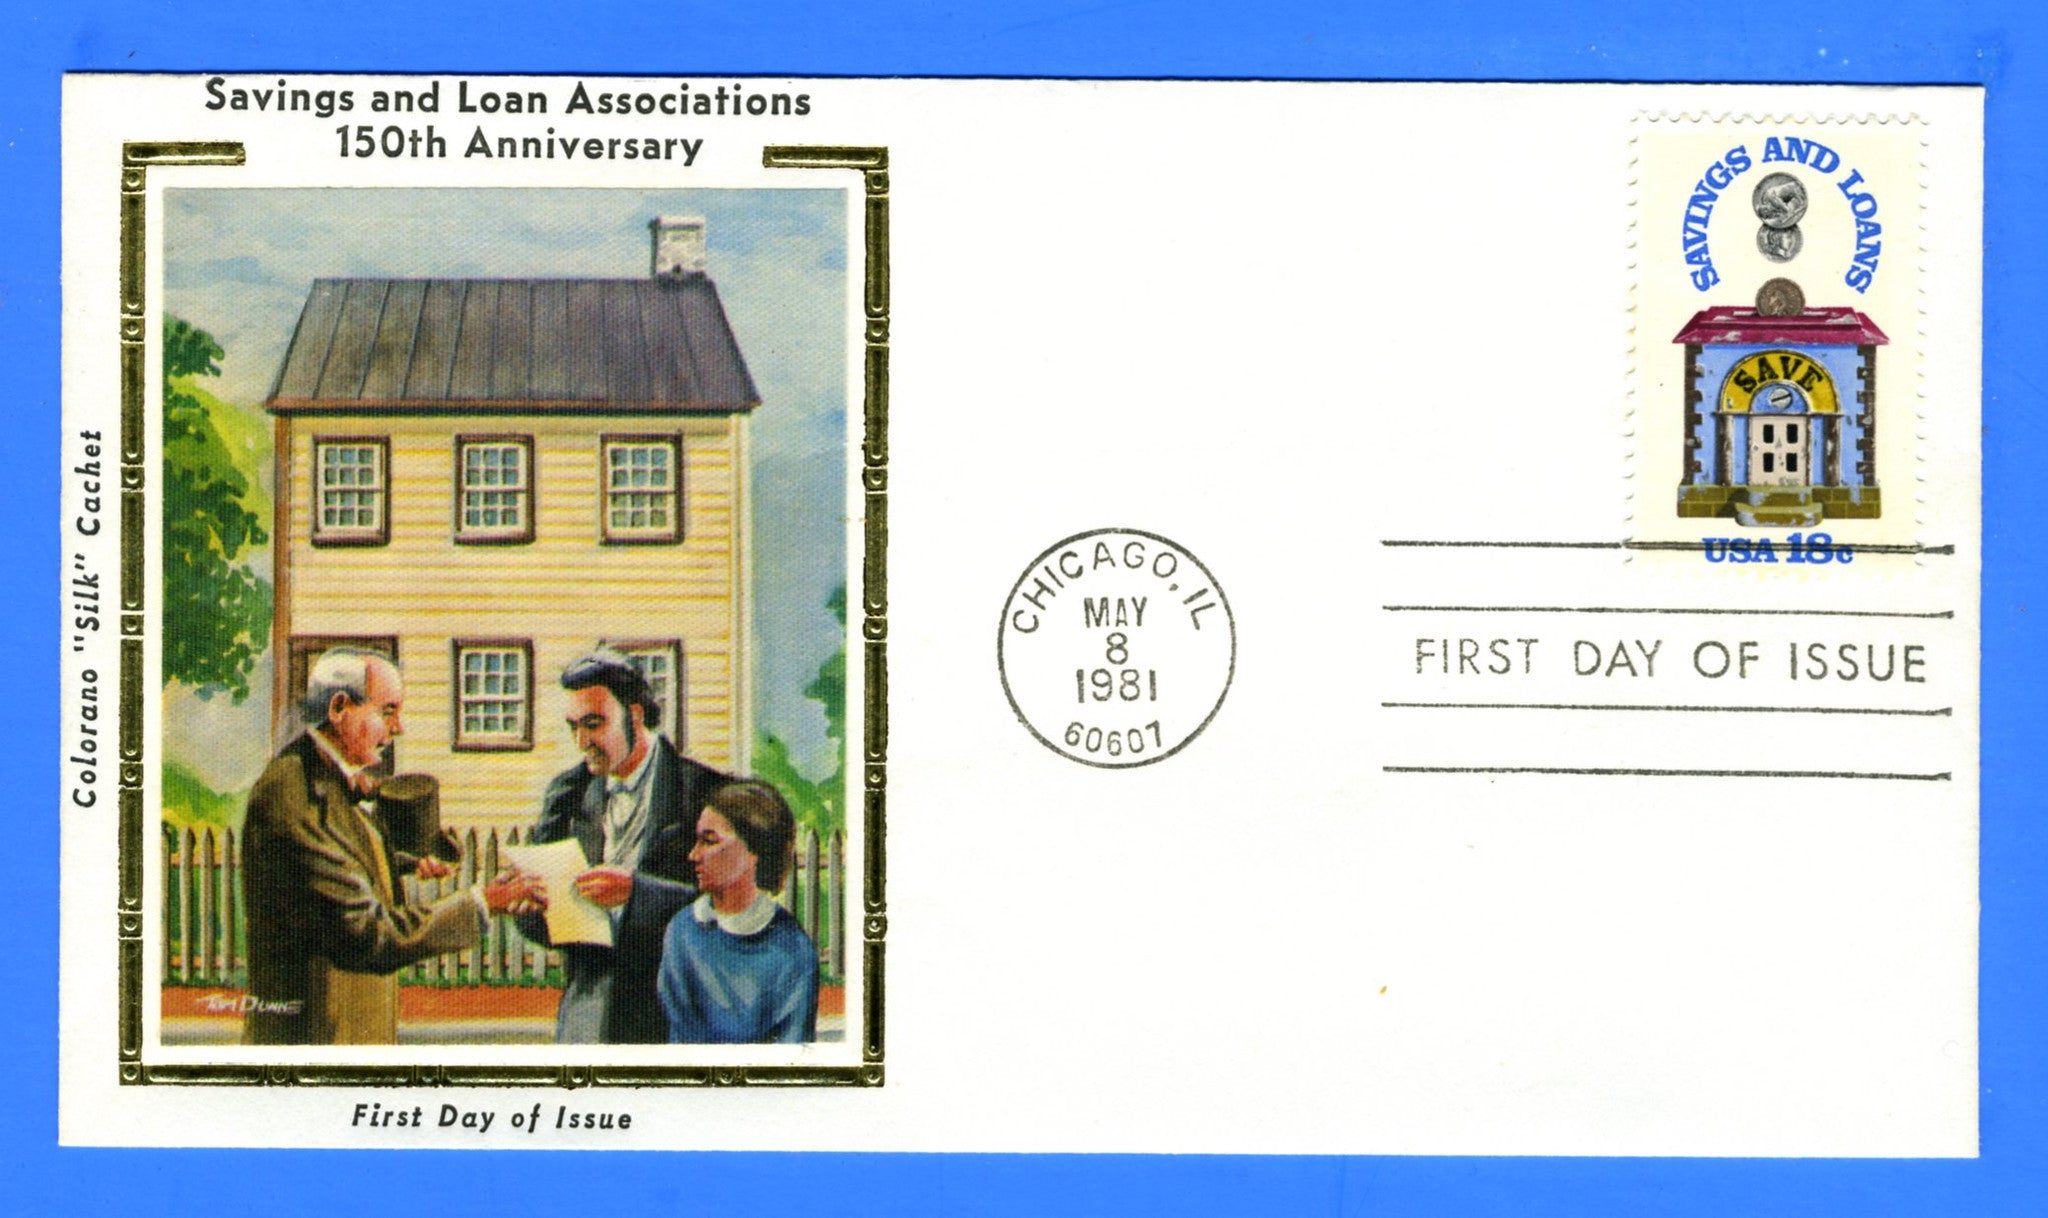 Scott 1911 18c Savings and Loans First Day Cover by Colorano